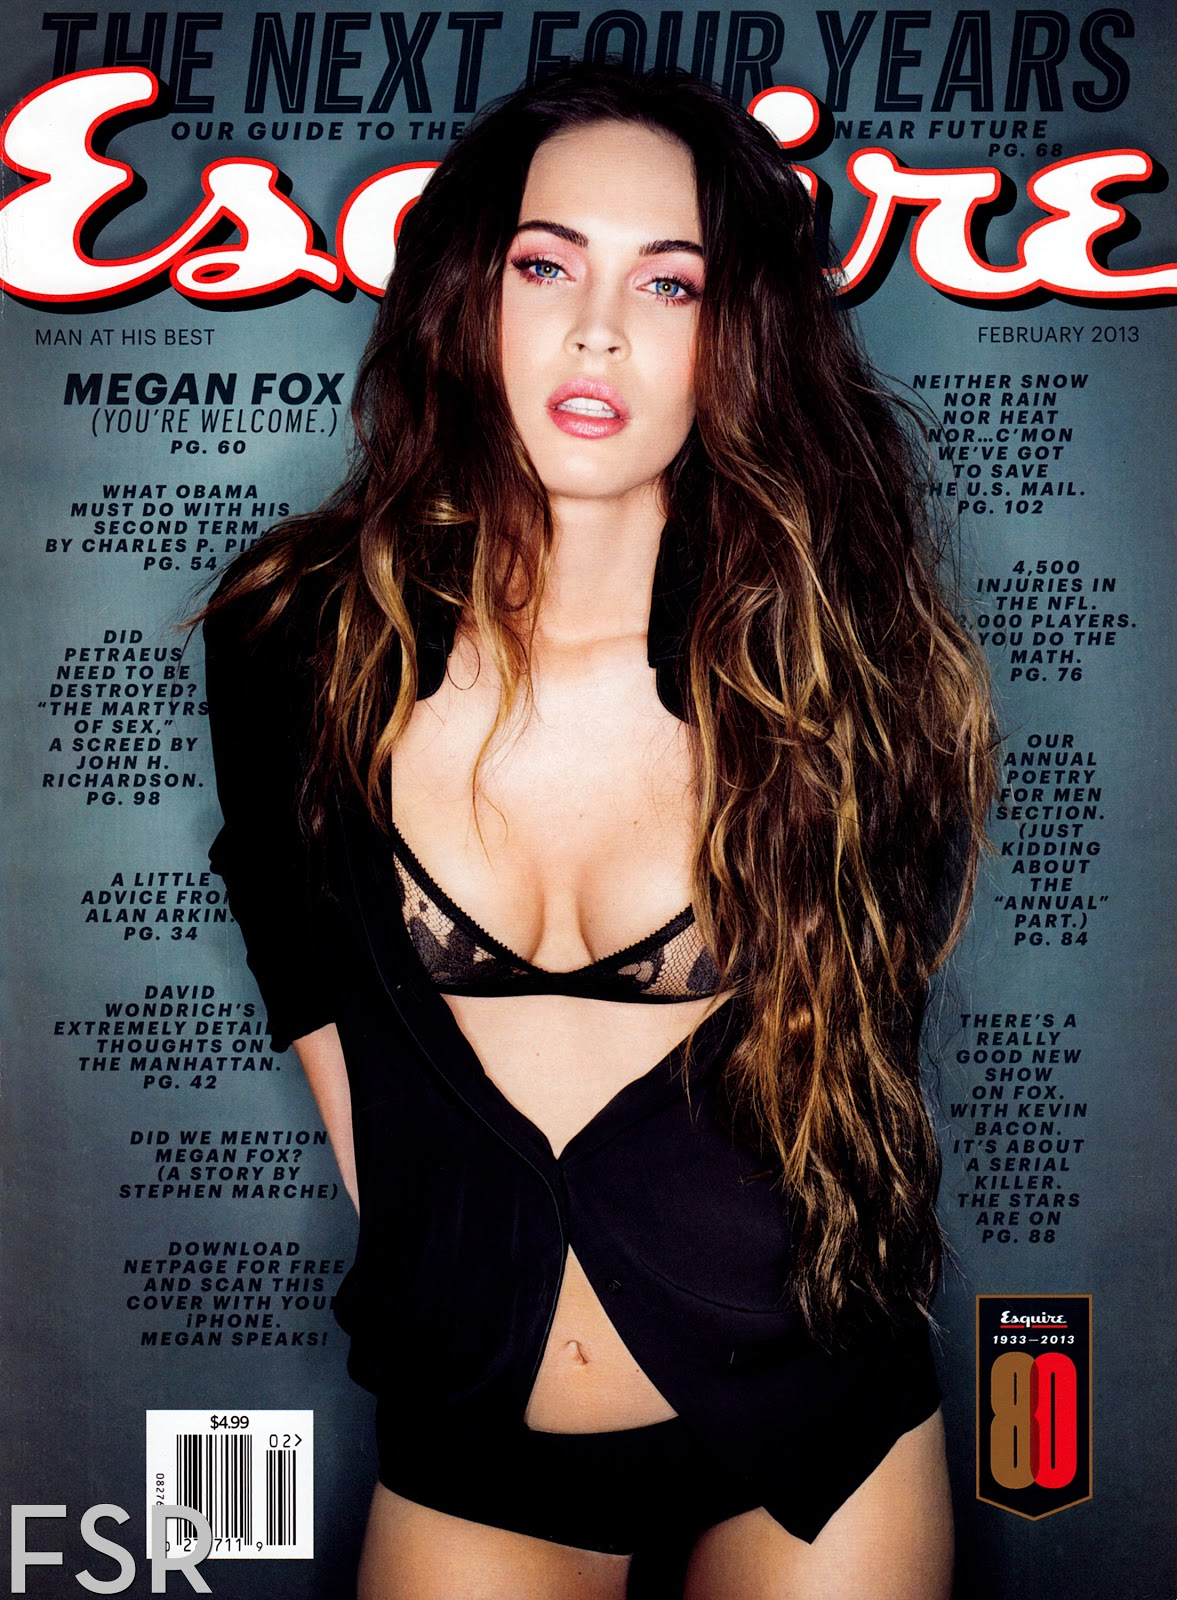 http://3.bp.blogspot.com/-56LJ8kdojEg/UPa_pQFFpmI/AAAAAAAC9VY/Wr23bsPFLow/s1600/fashion_scans_remastered-megan_fox-esquire_usa-february_2013-scanned_by_vampirehorde-hq-1.jpg